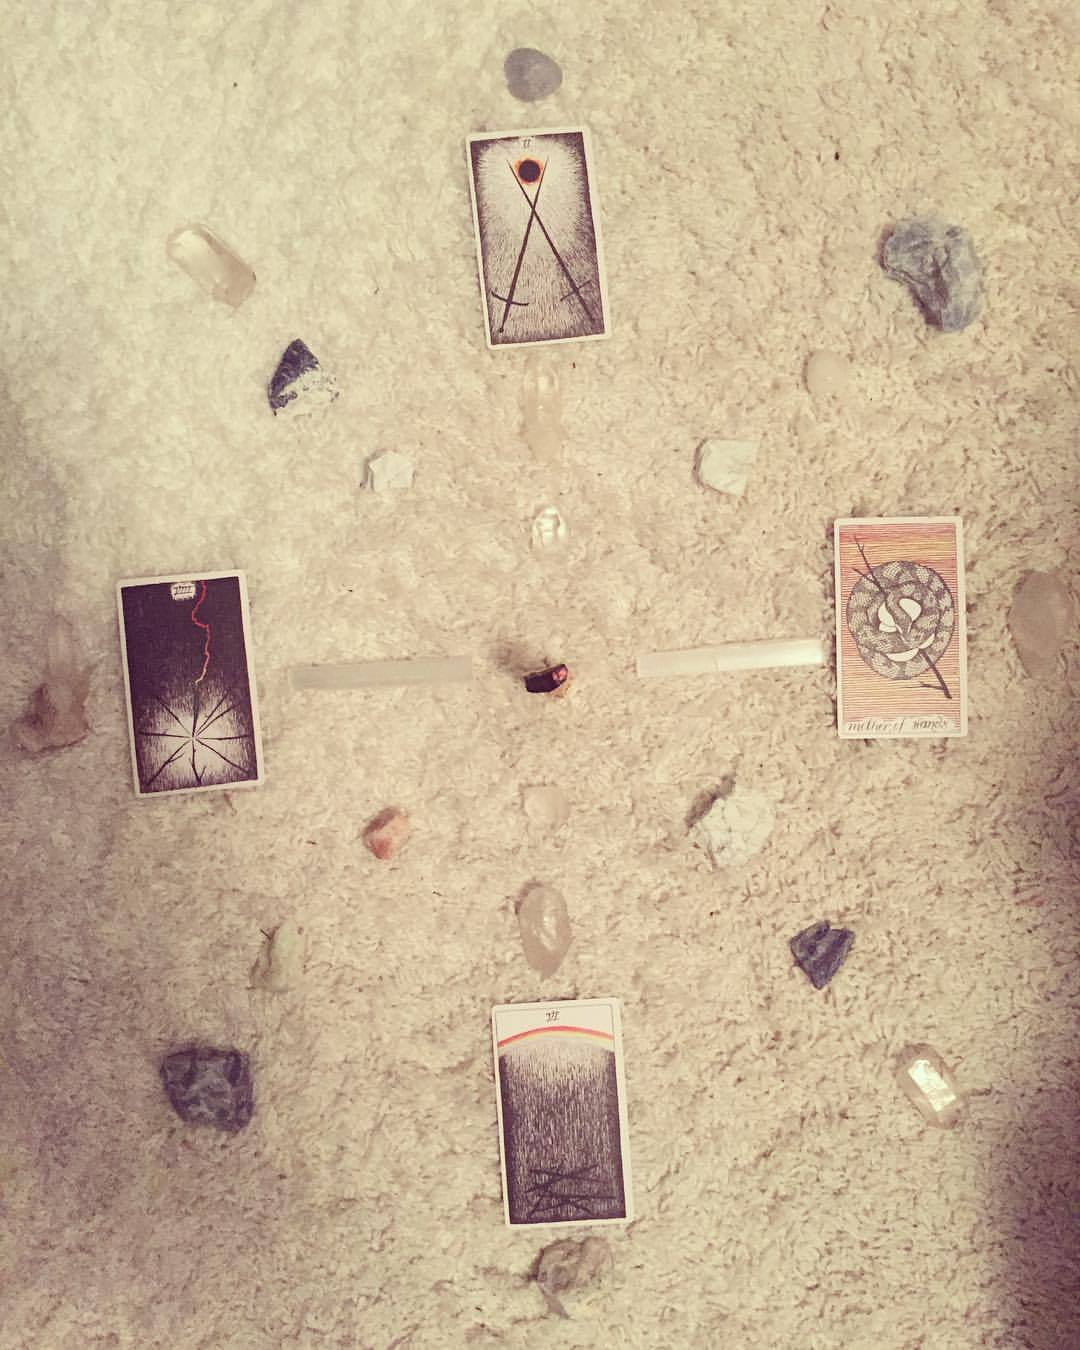 Making magic with my boys tonight. #thepenboys @the_wild_unknown #tarot #crystals #marywrites #palosanto